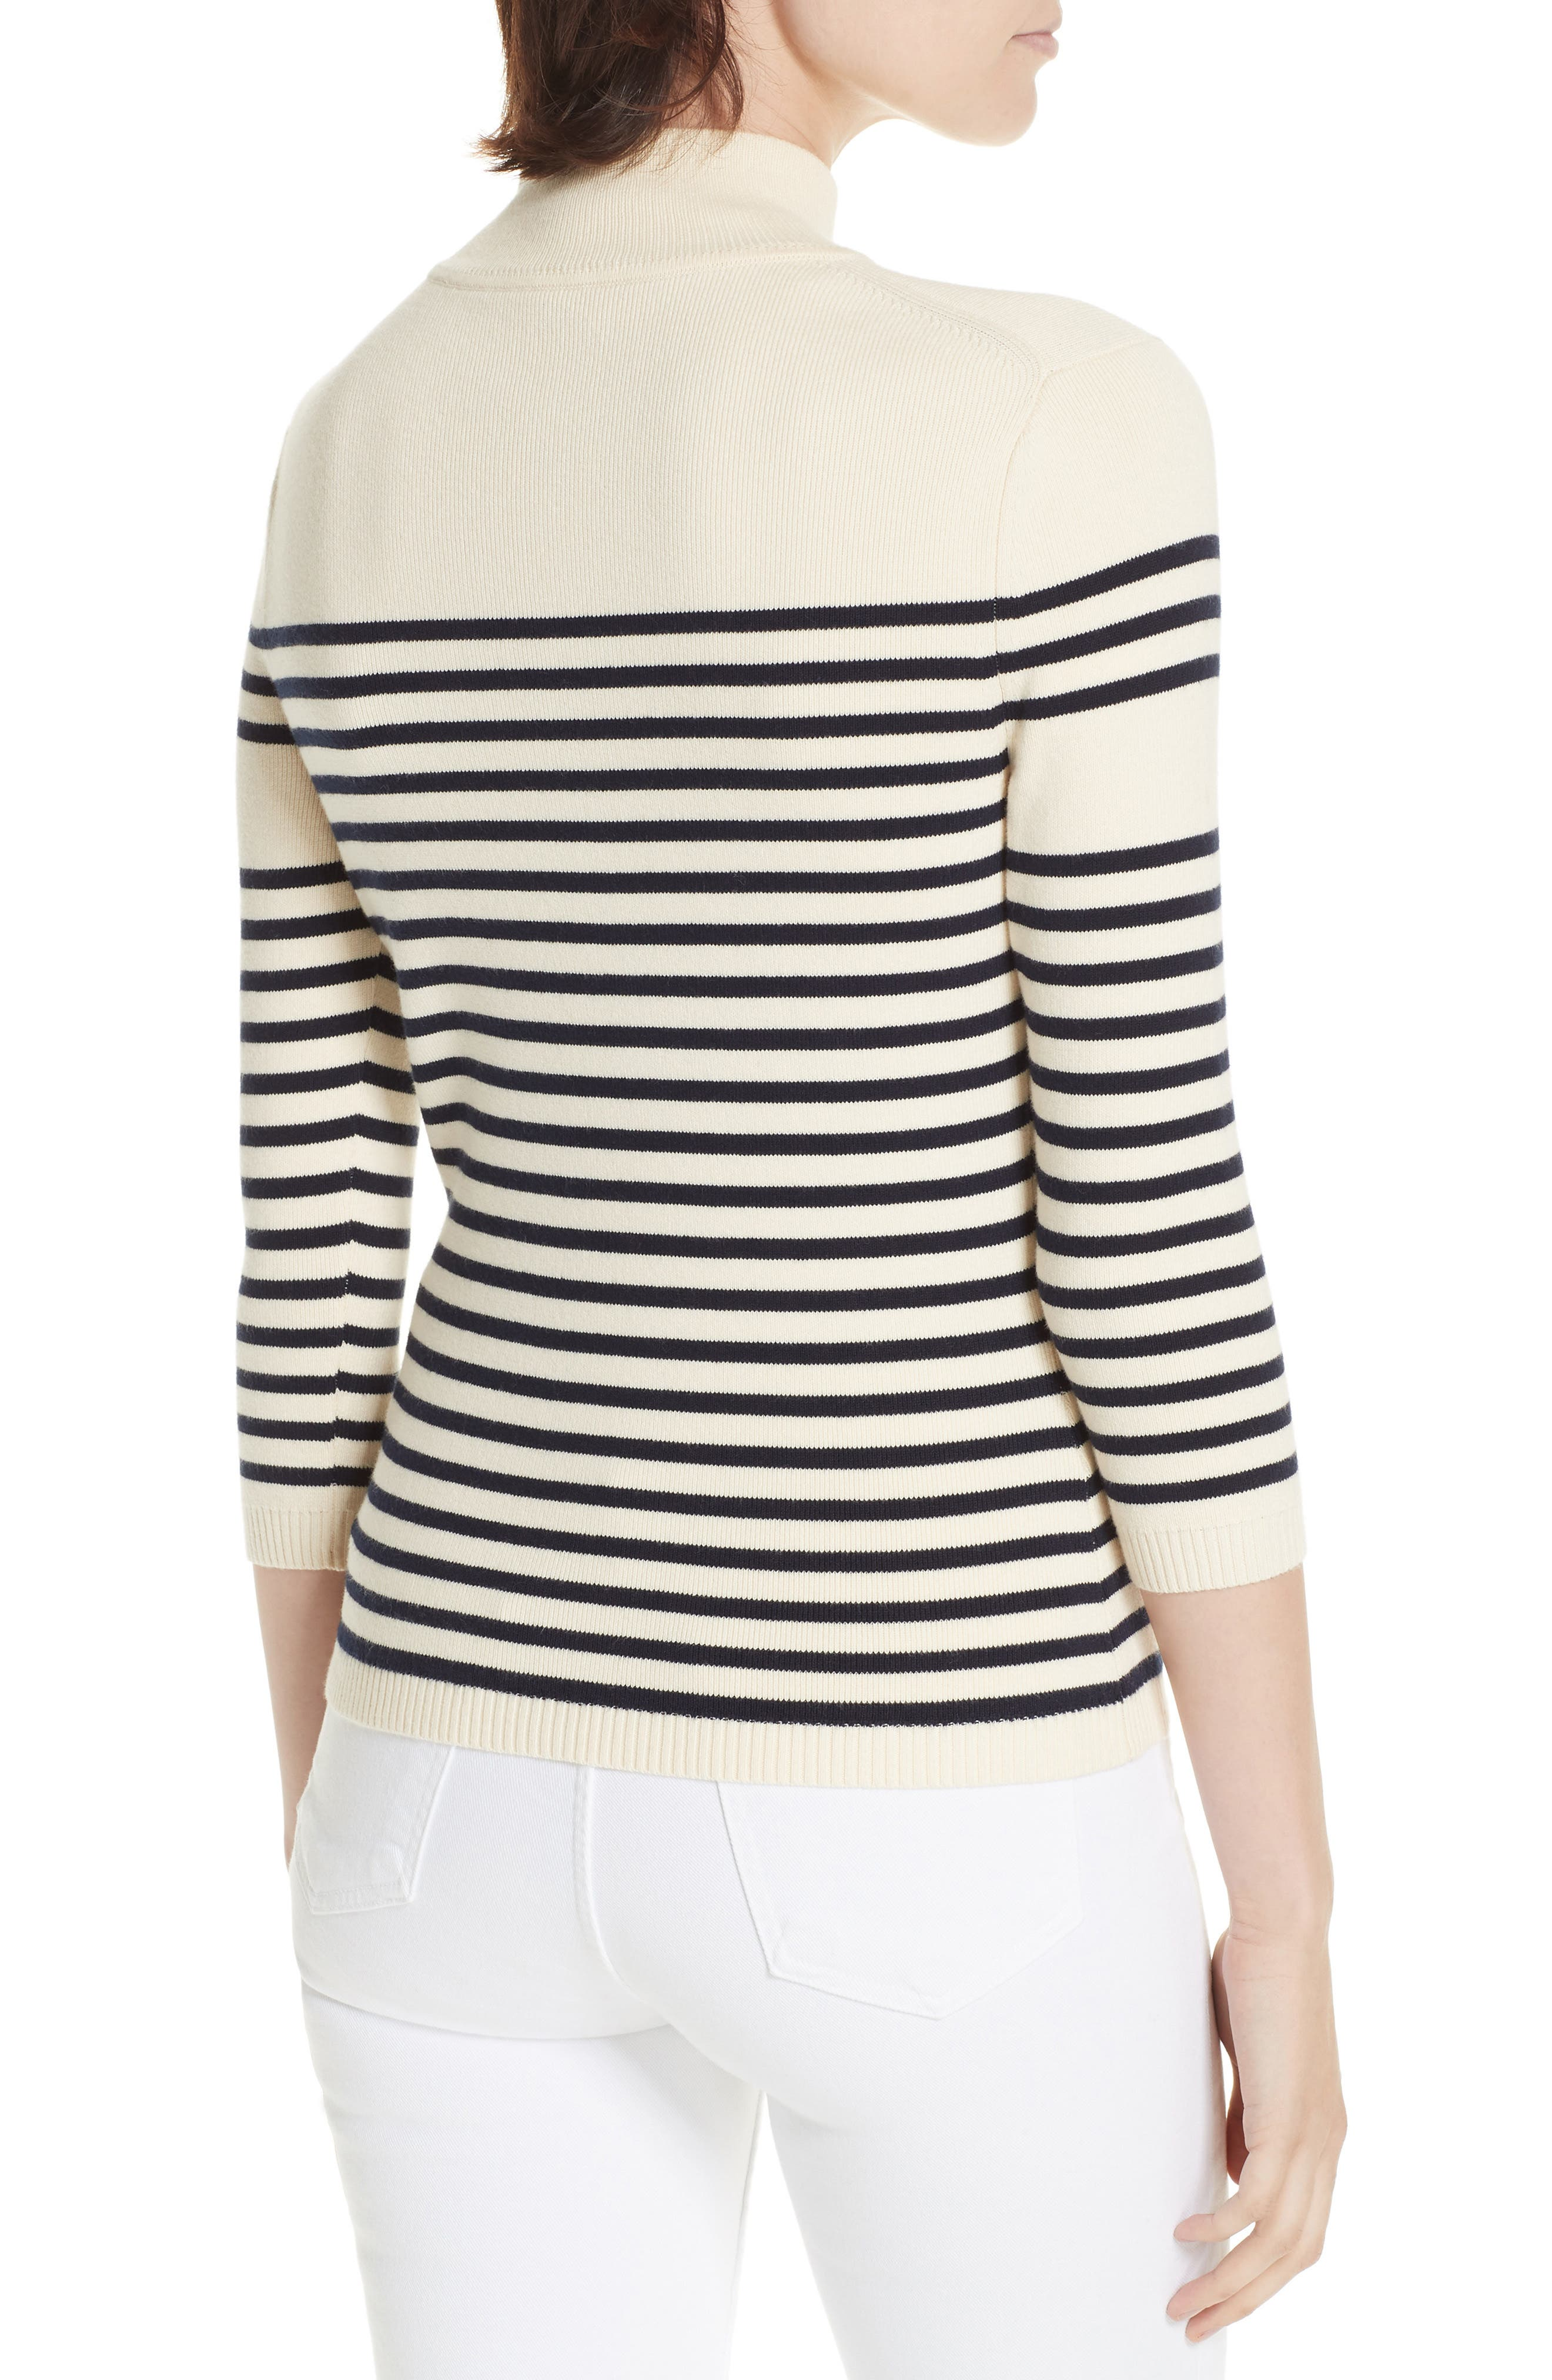 Classique Stripe Sweater,                             Alternate thumbnail 2, color,                             CREAM/ NAVY STRIPES